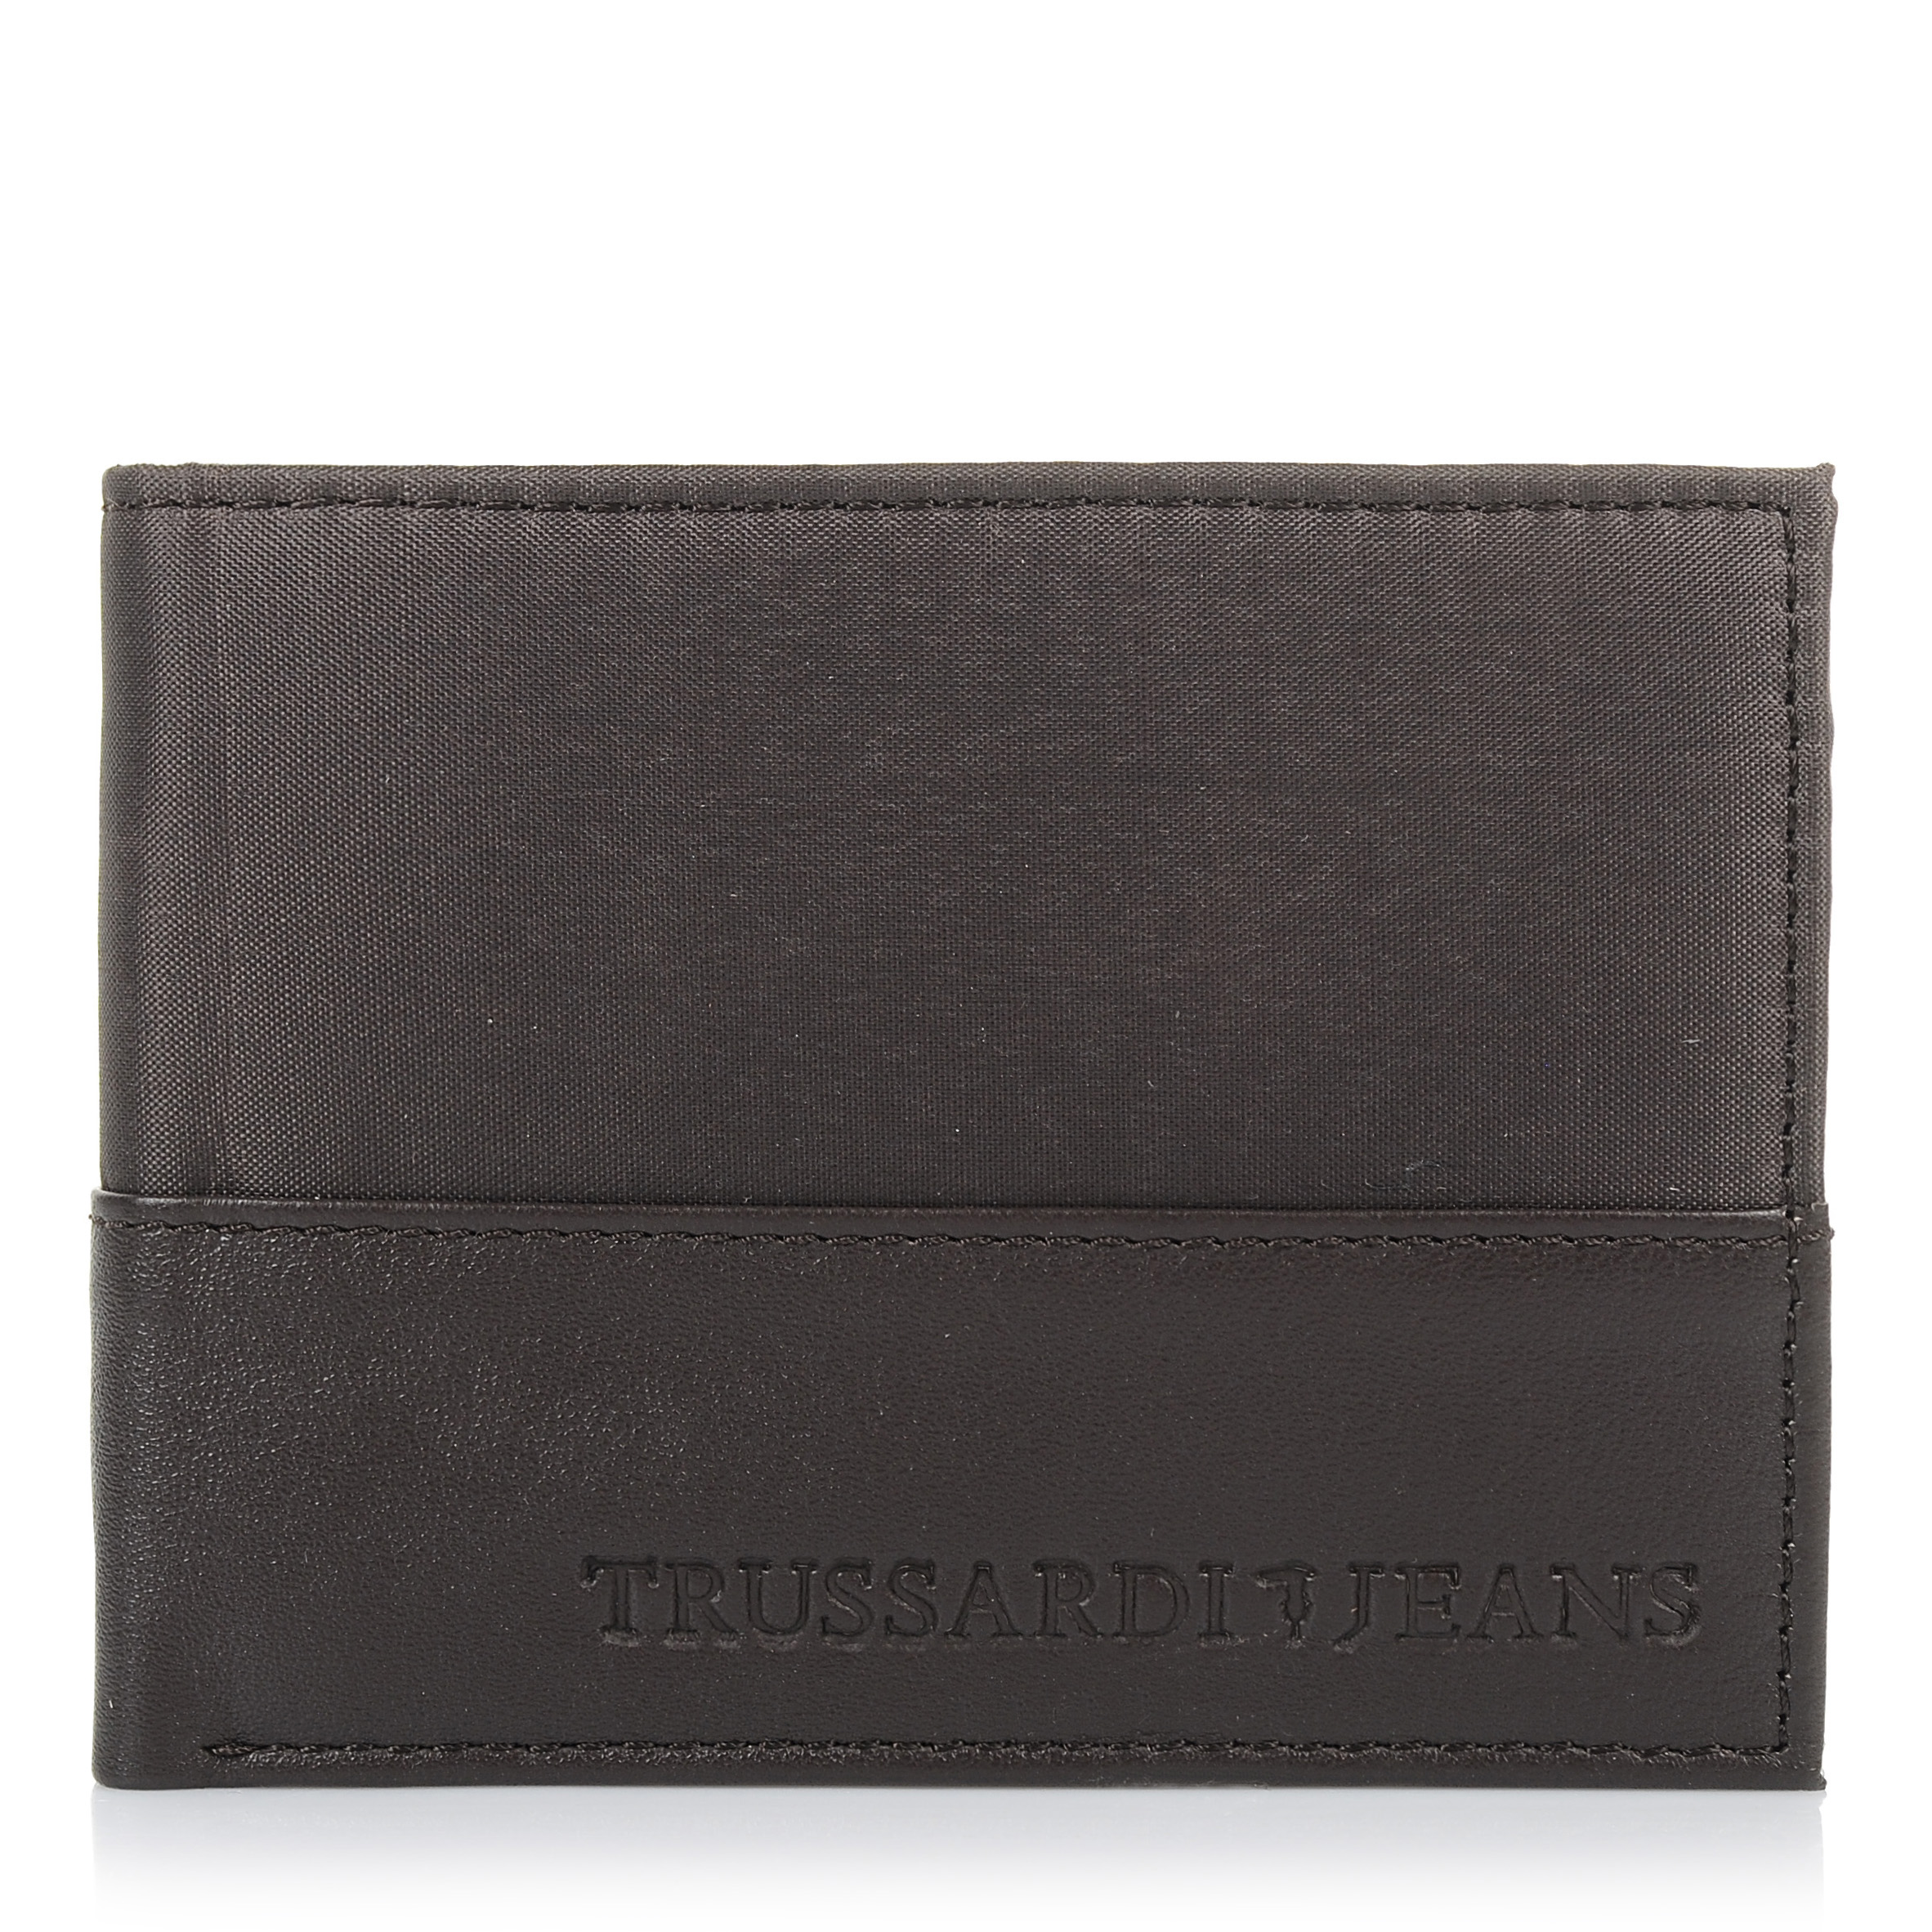 29b3d445d5 Δερμάτινο Πορτοφόλι Trussardi Jeans Wallet Credit Card Coin Pocket 71W00004